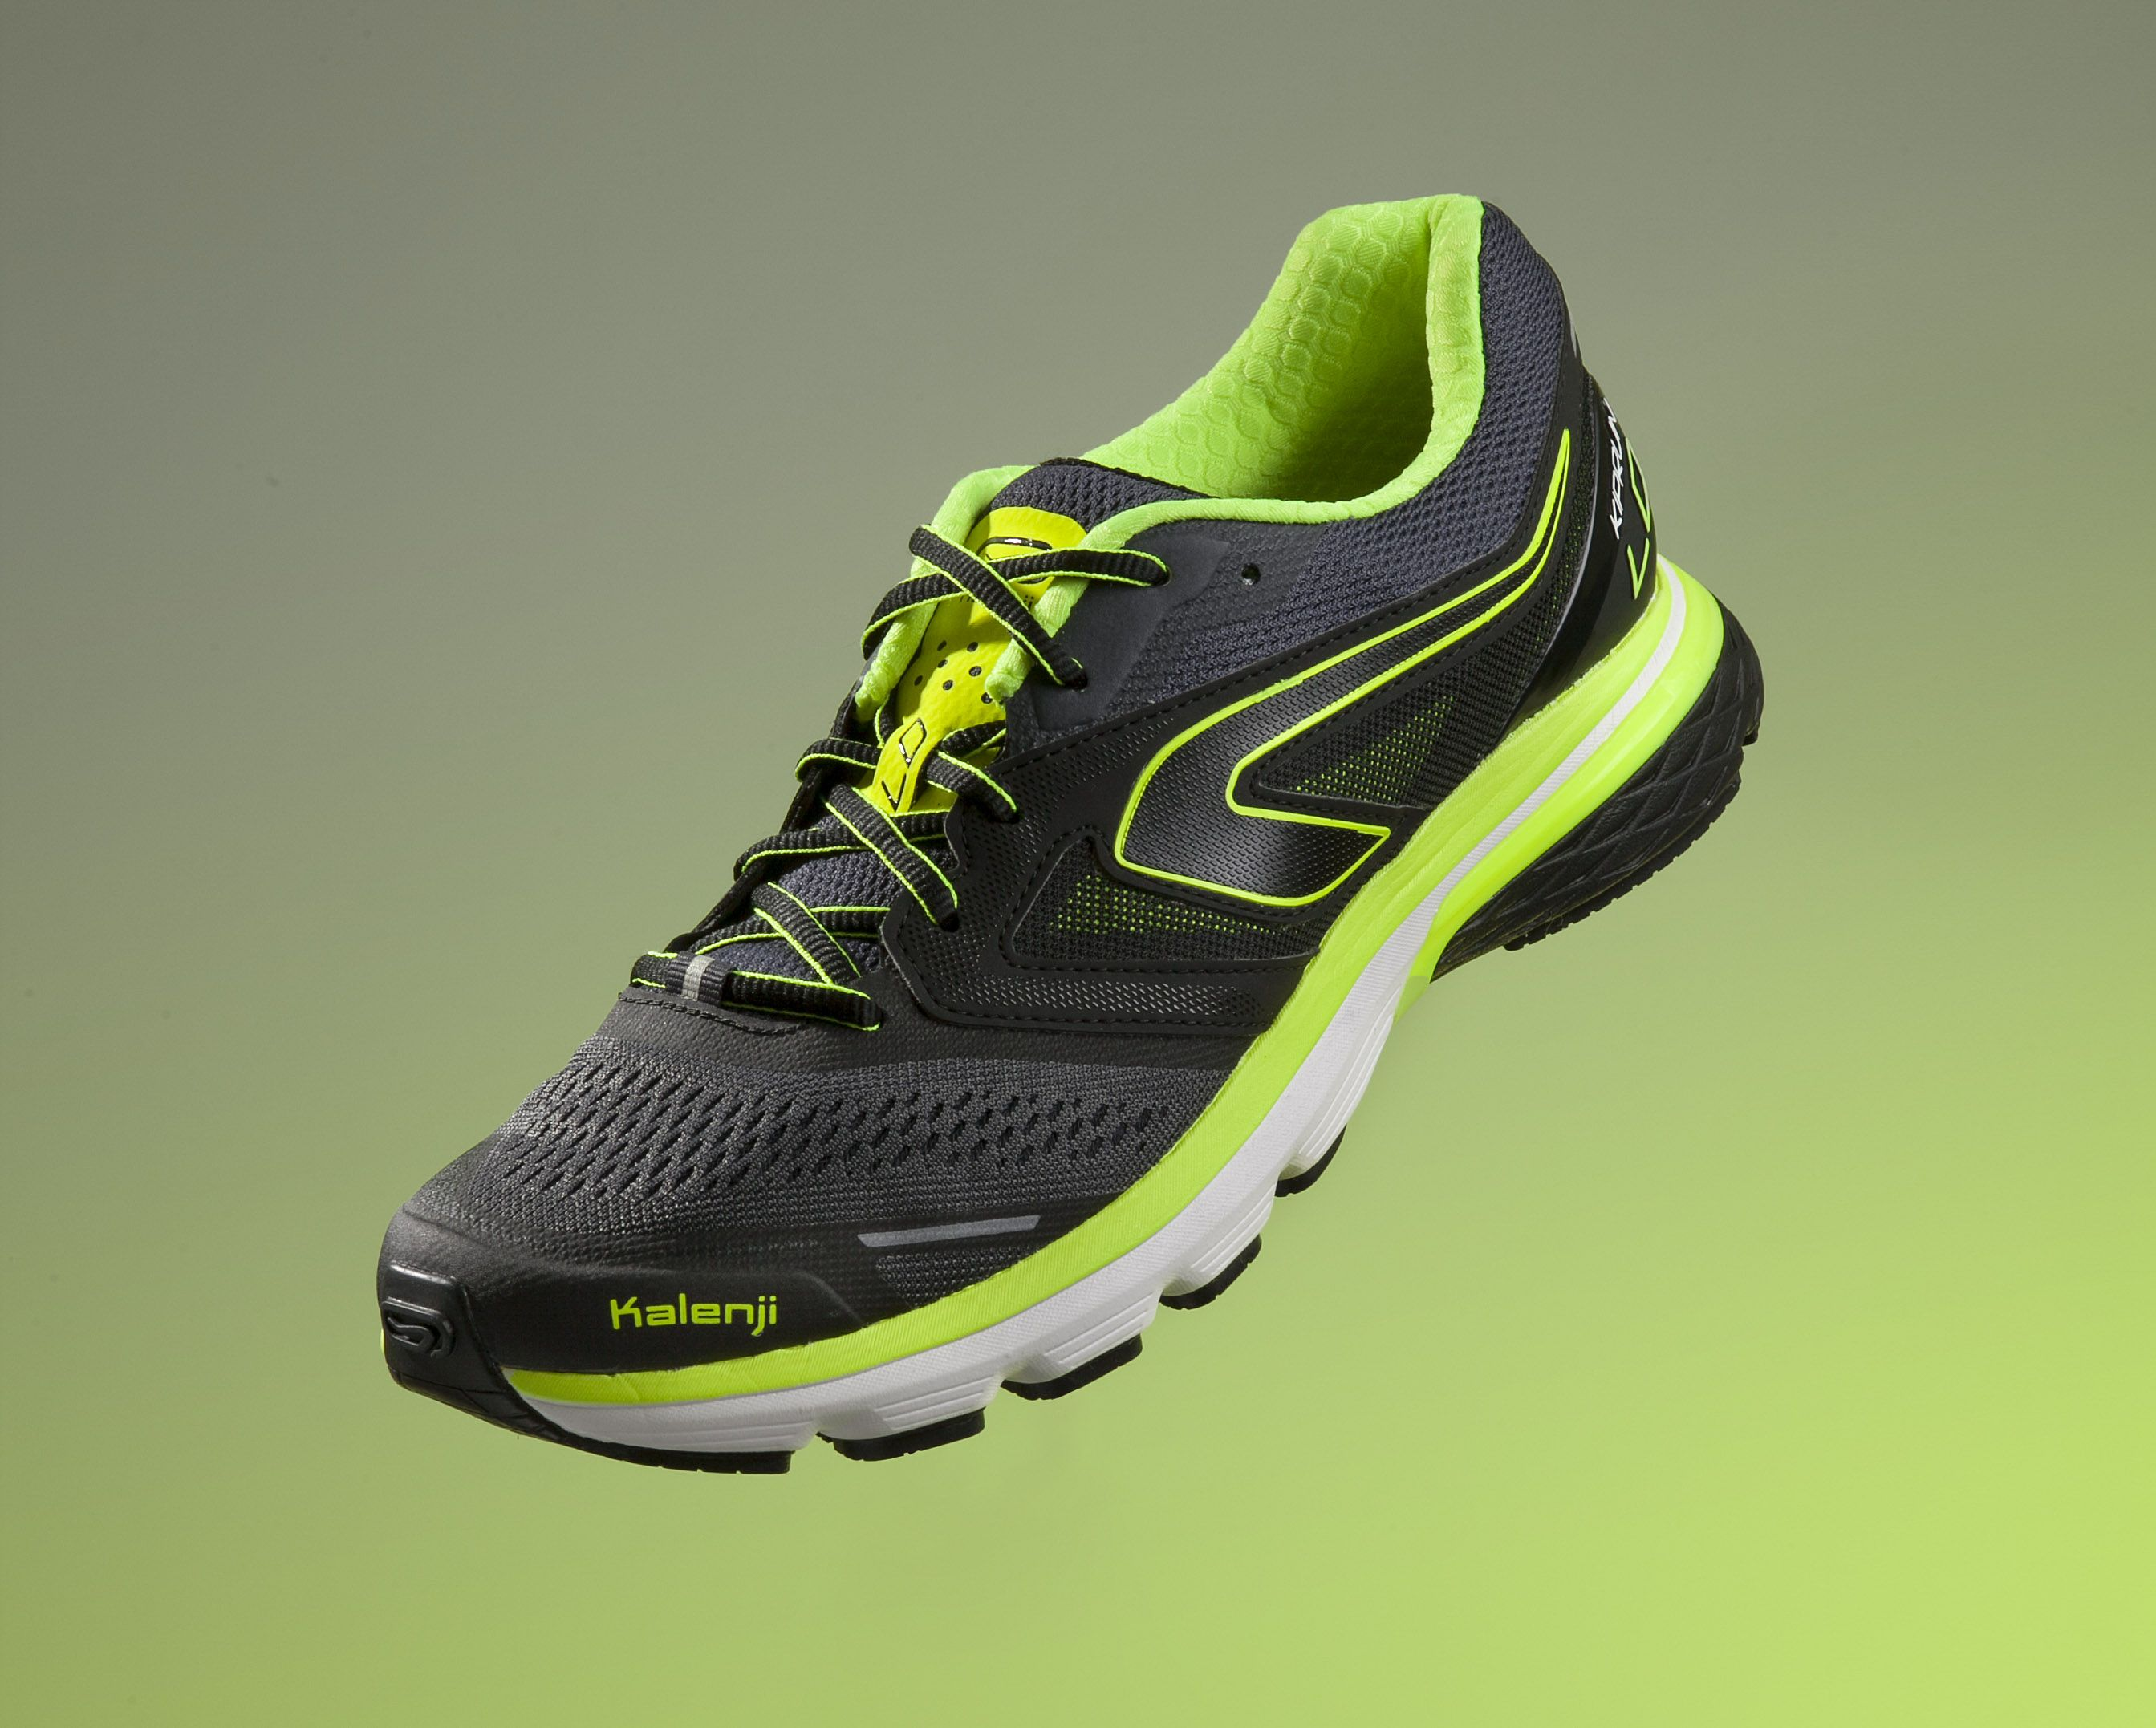 7e74a0f87 Shoe review - Are £50 running shoes worth it